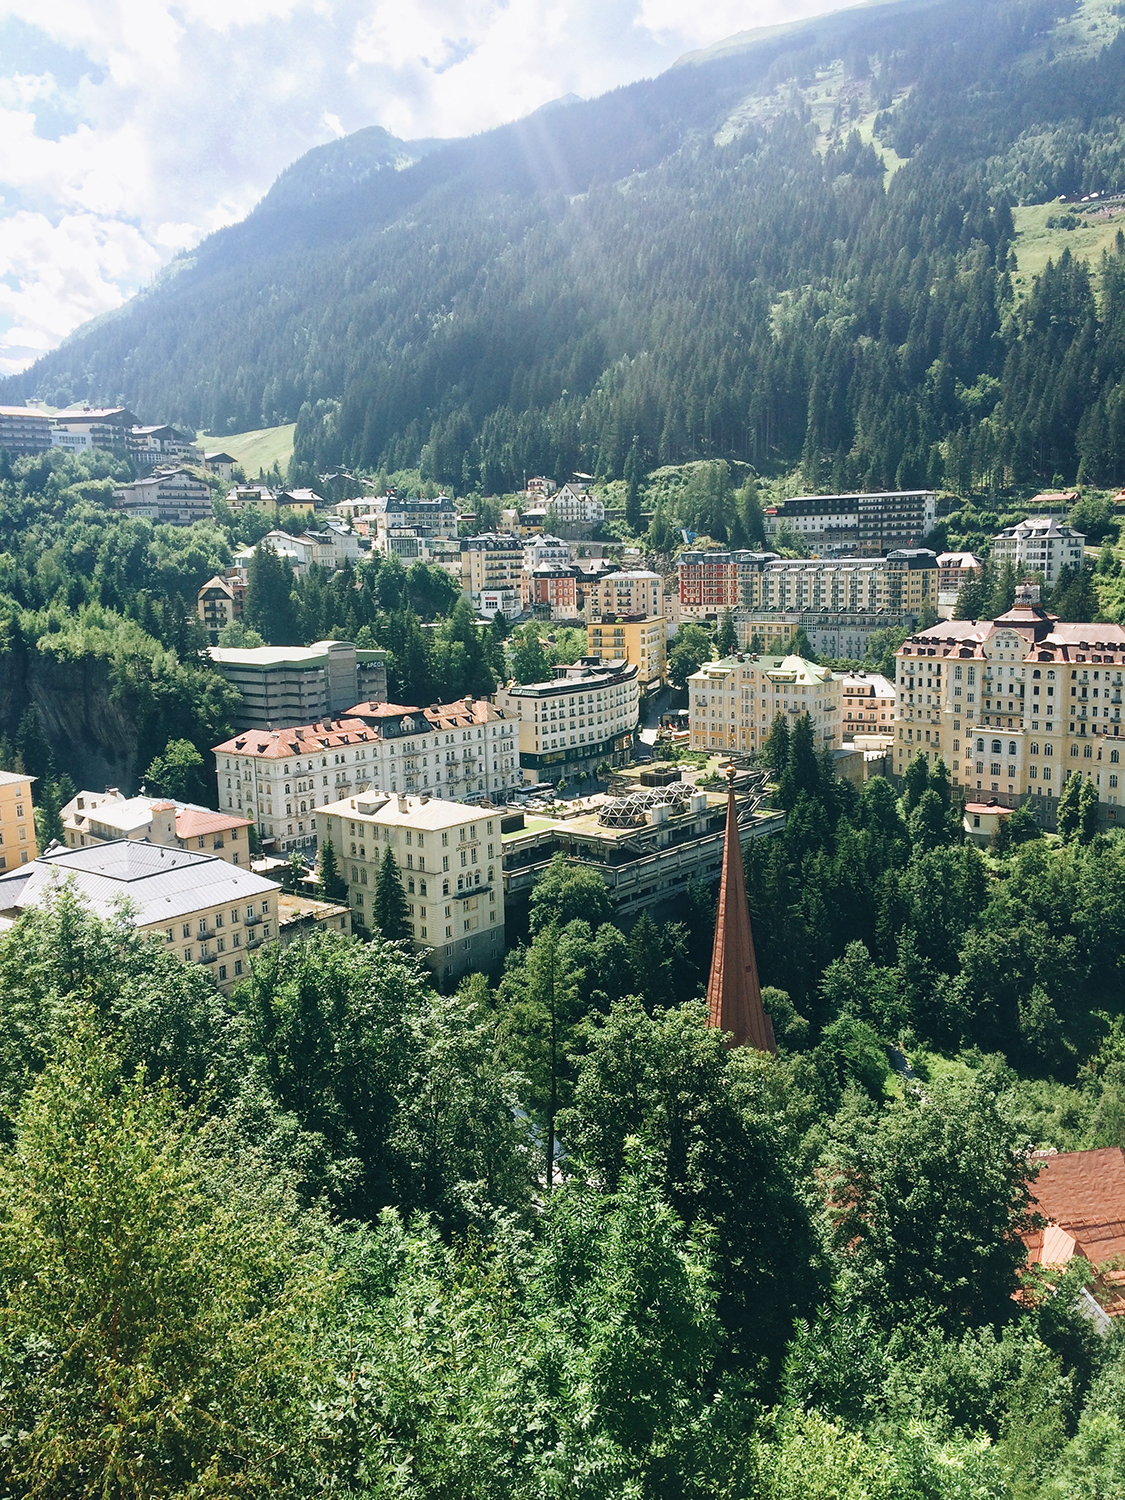 Inspirierender Kultursommer In Bad Gastein Gastein Blog - Bad Gastein